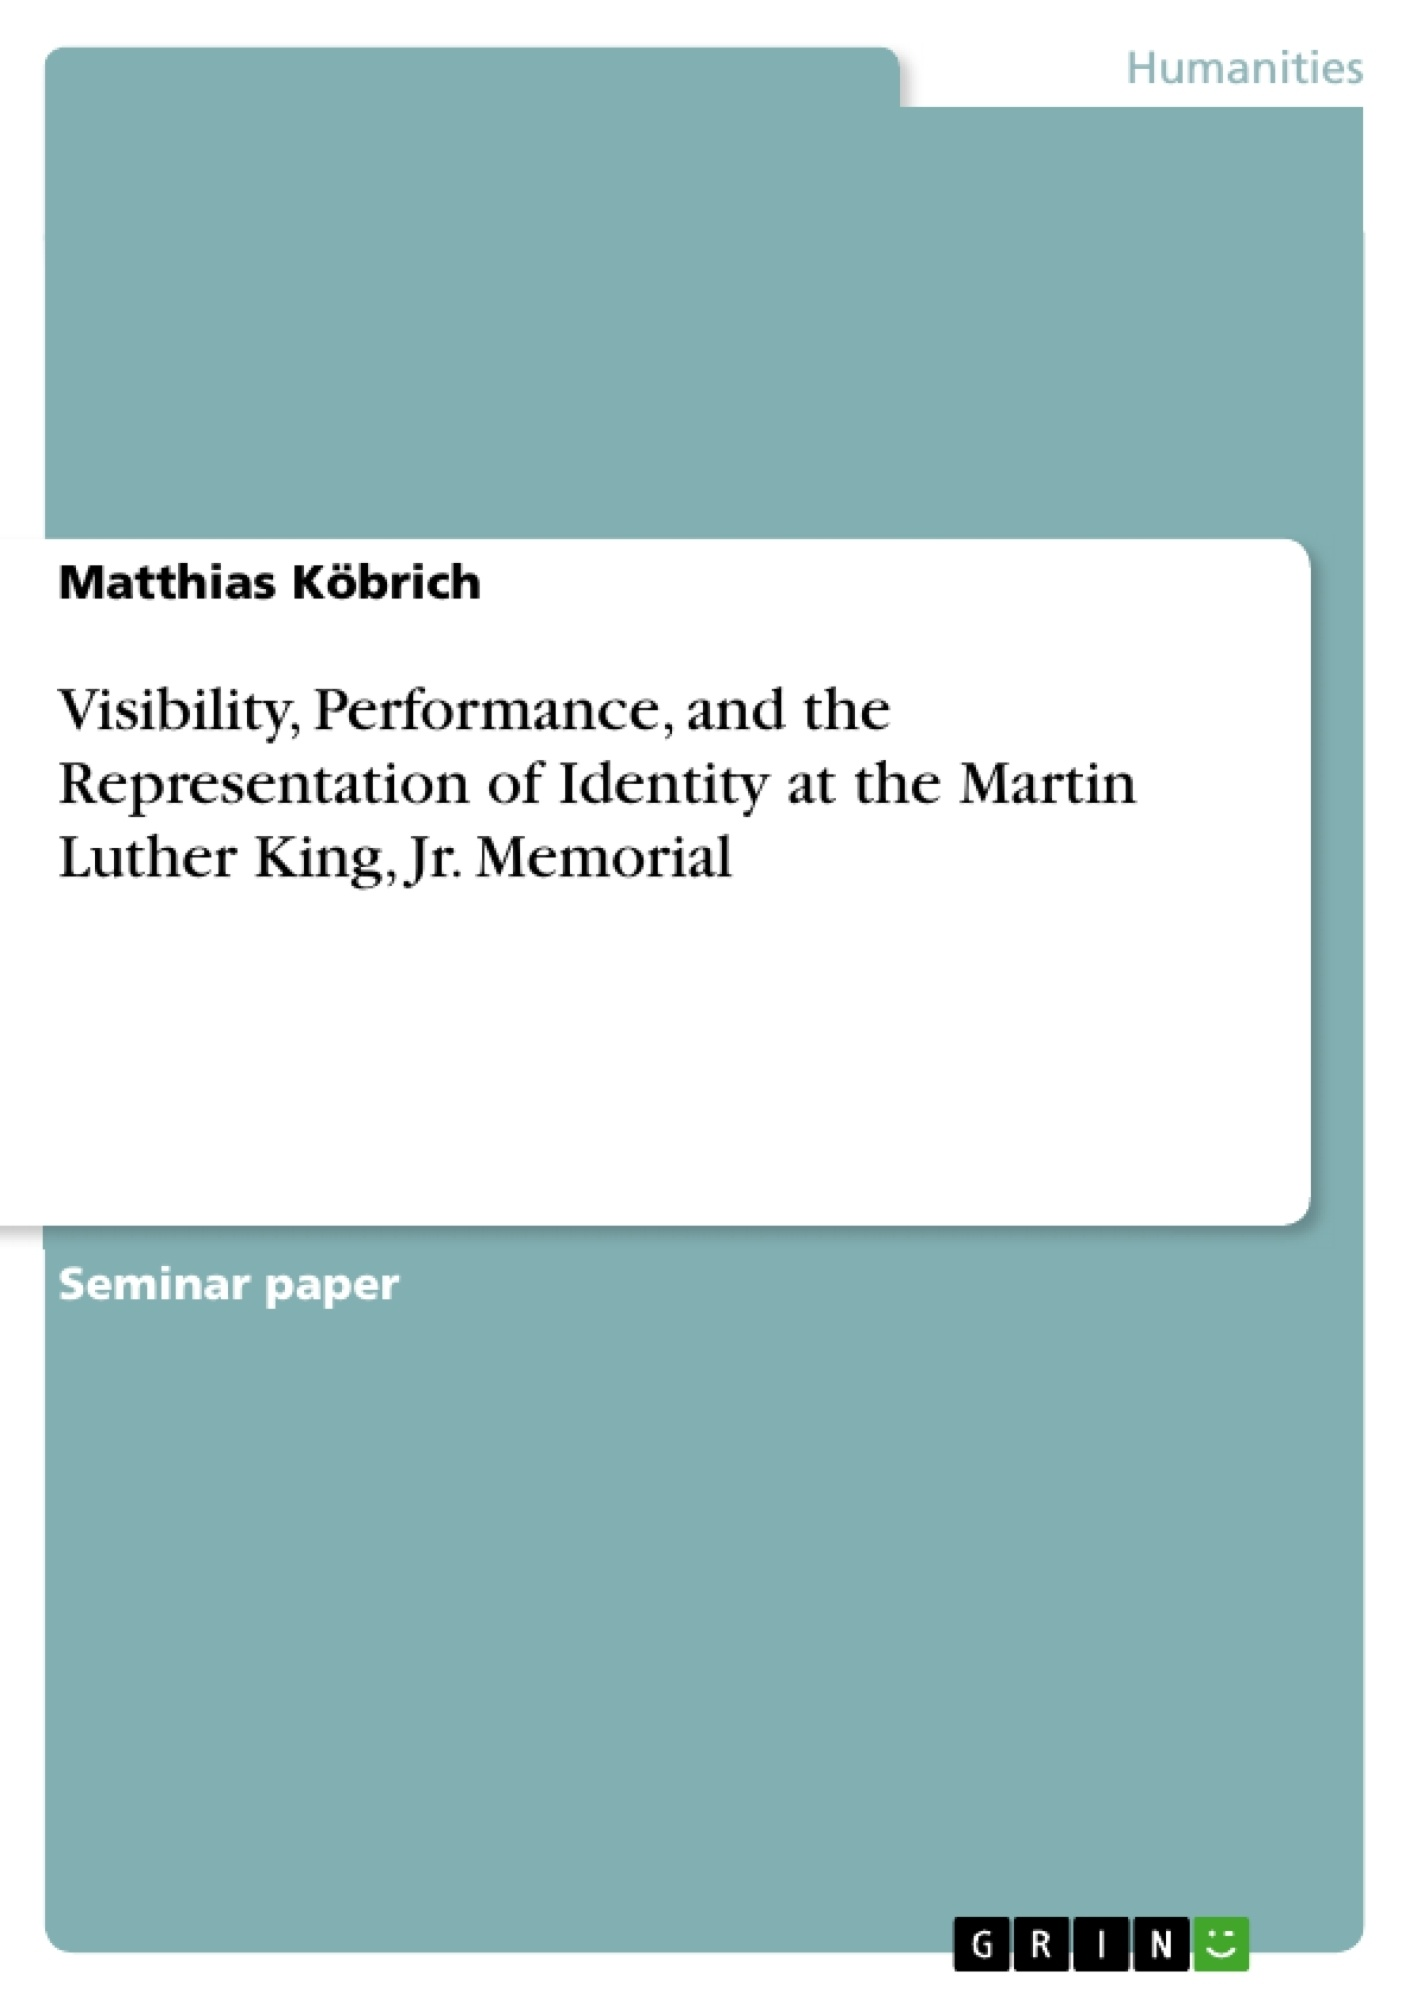 Title: Visibility, Performance, and the Representation of Identity at the Martin Luther King, Jr. Memorial